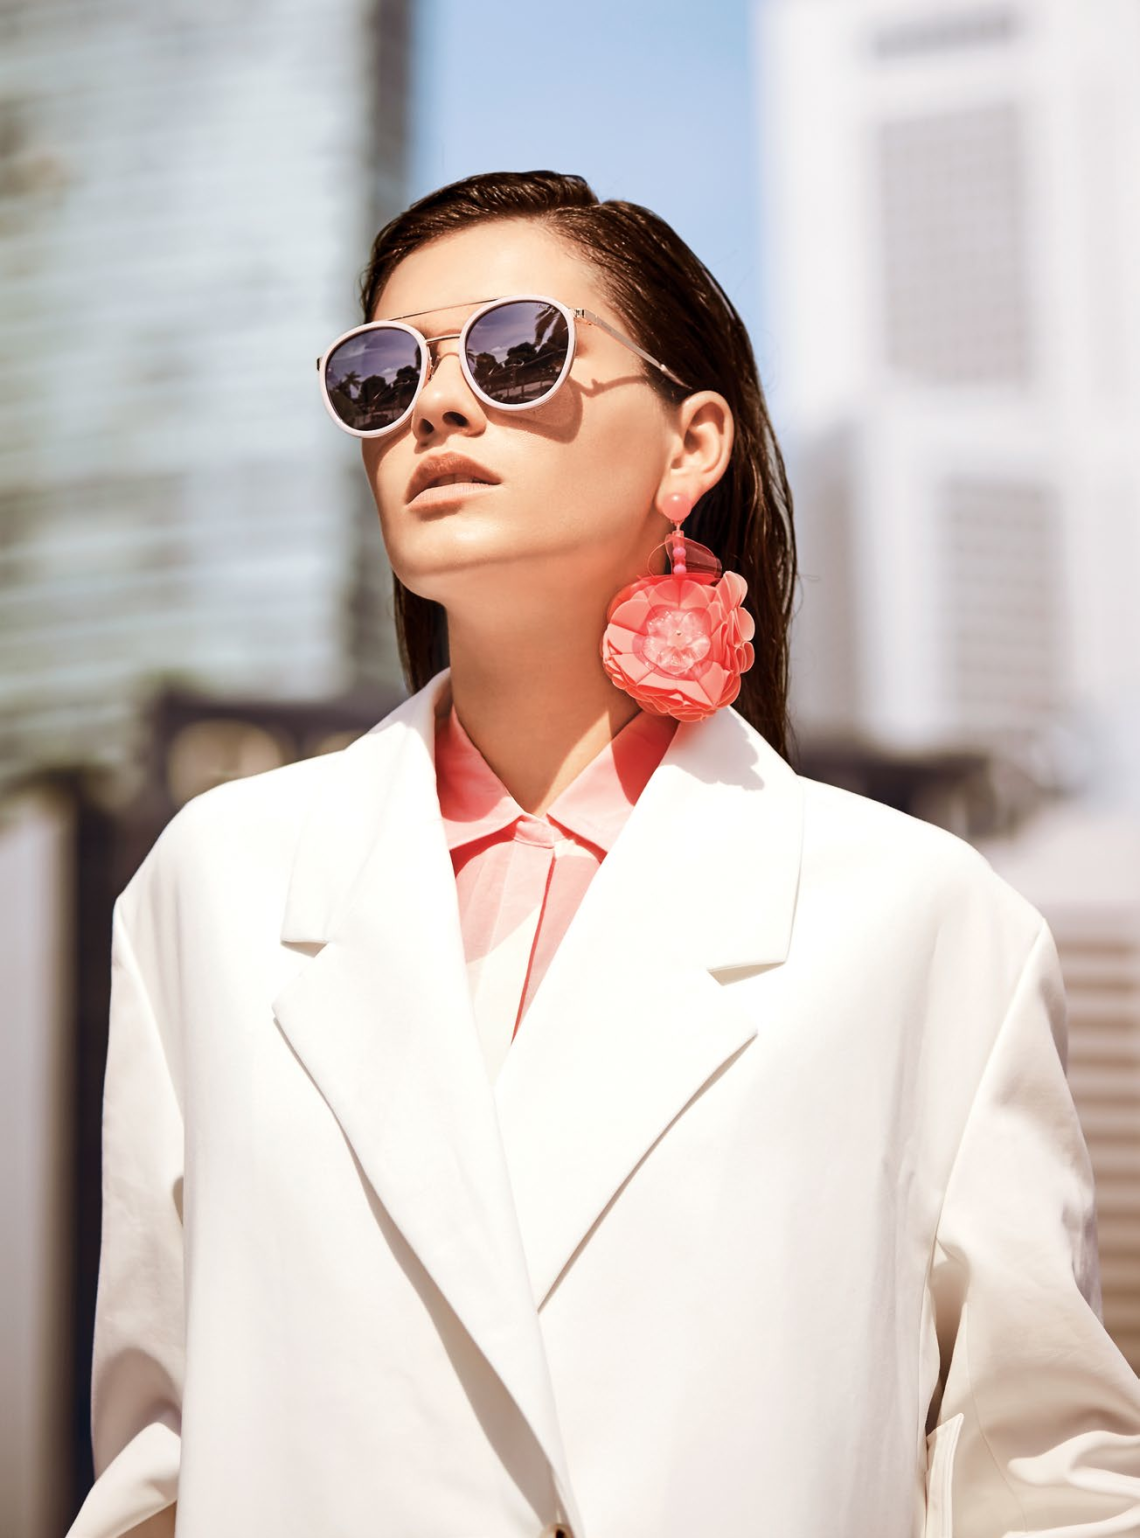 Coat, $275, from COS. Blouse; and earrings, $225, from Bimba Y Lola. Sunglasses from Polaroid.